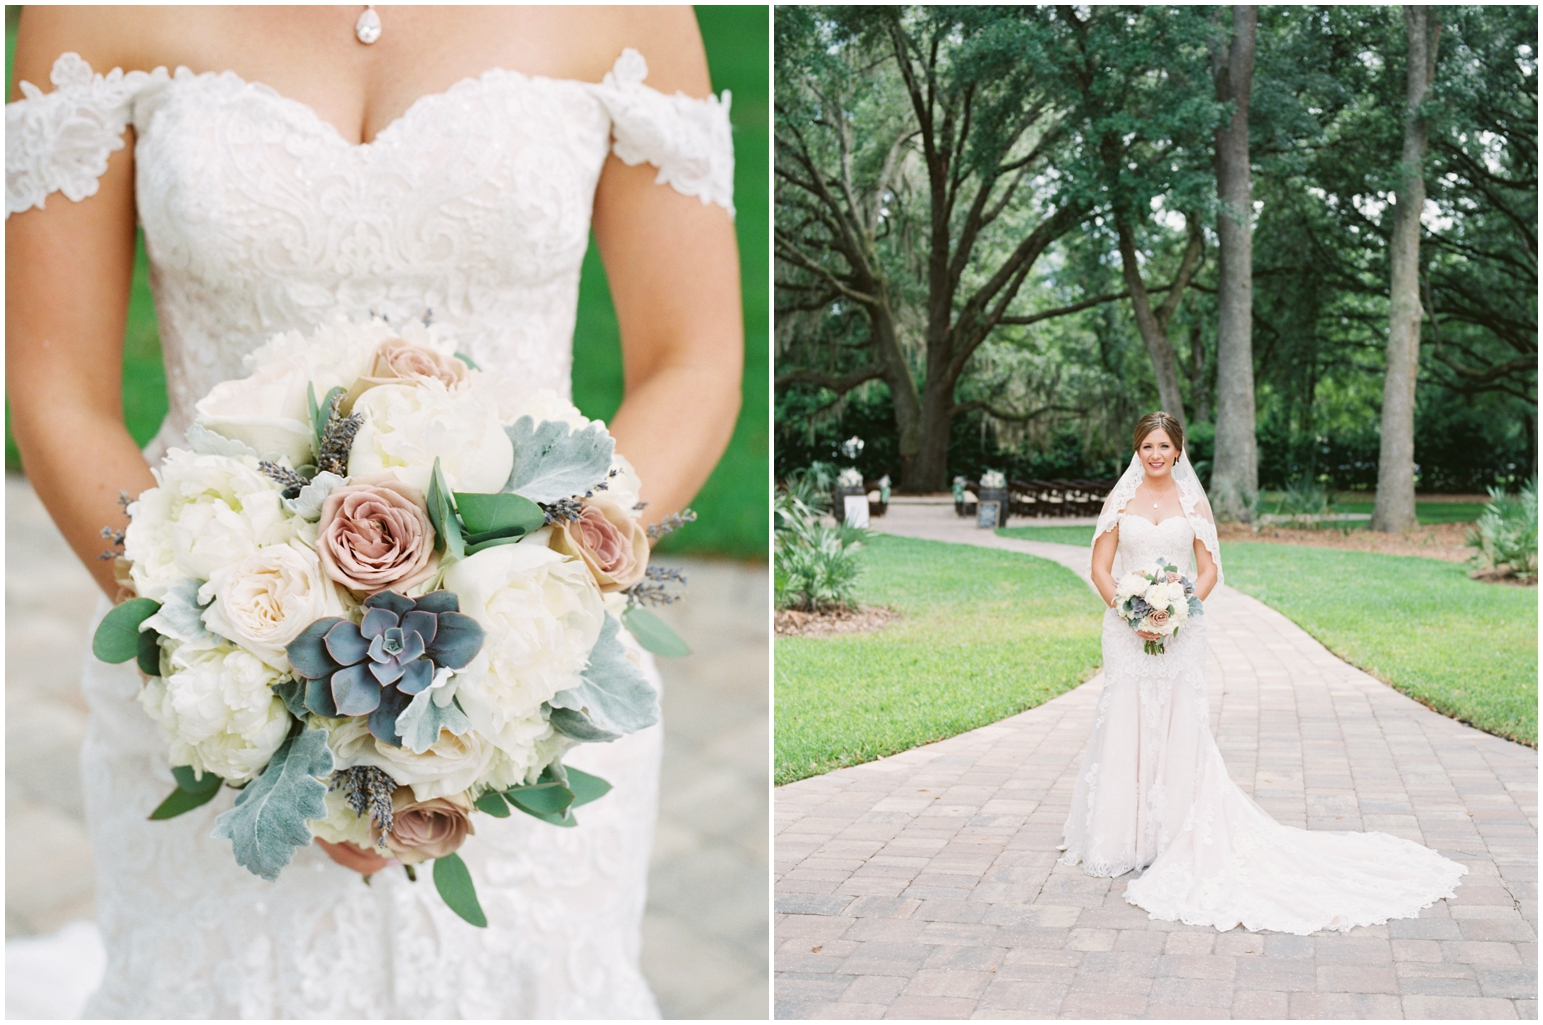 Lisa Silva Photography- Jacksonville, St Augustine, Fernandina Beach, Amelia Island, Ponte Vedra Beach, North East Florida Fine Art Film Photographer- Ashley and Shawn's wedding at bowing oaks plantation_0025.jpg